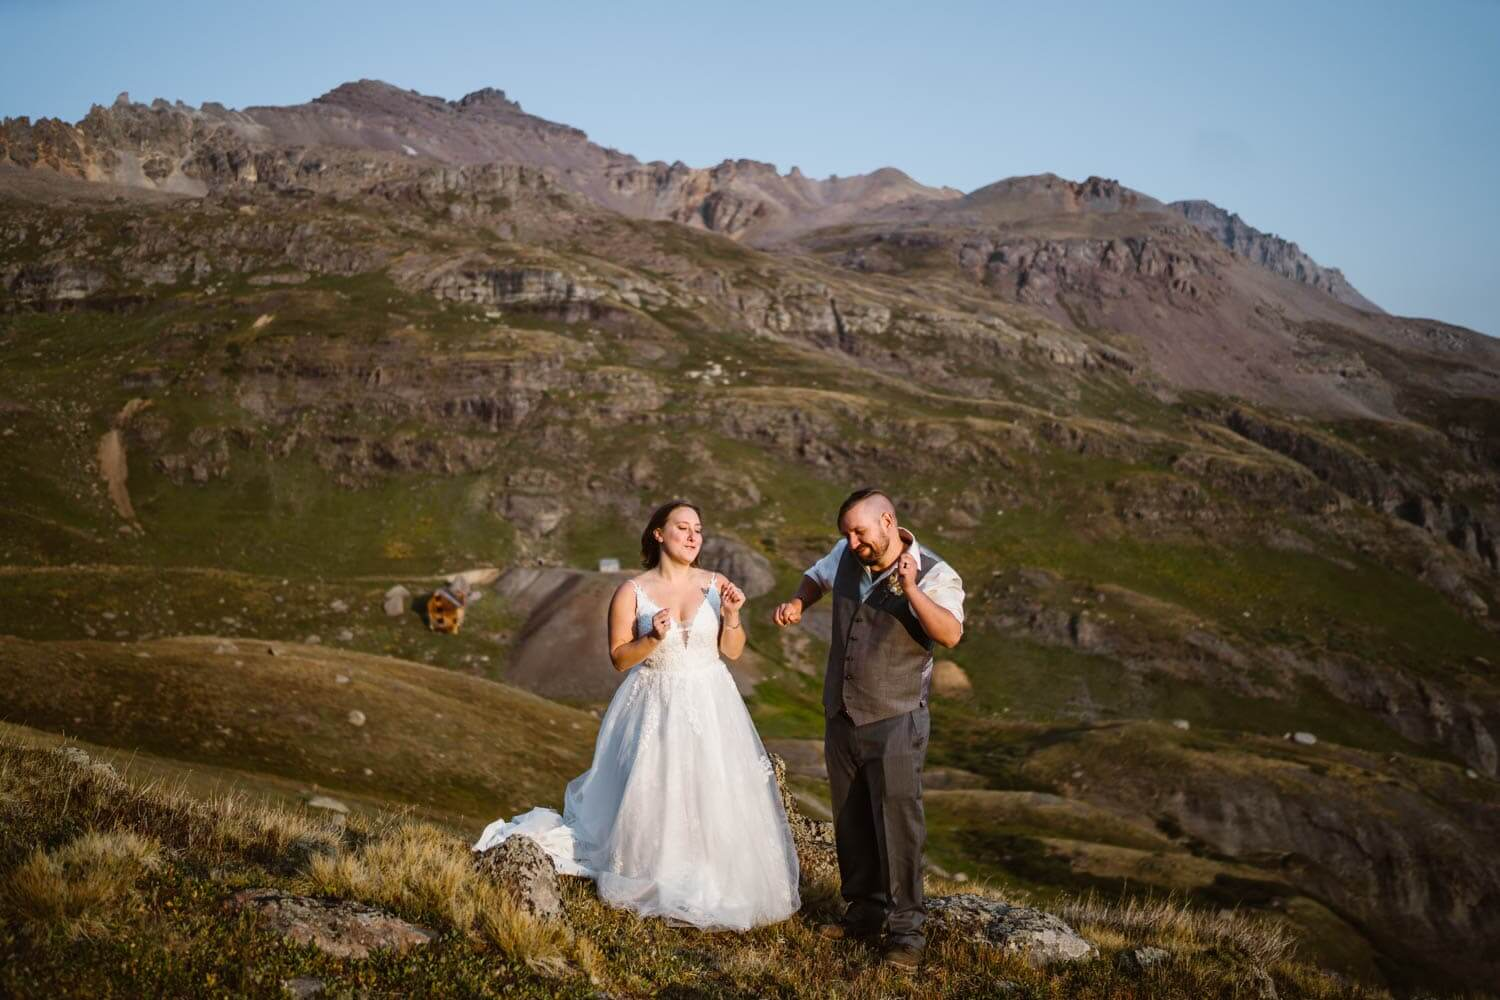 Telluride Elopement Guide + Packages